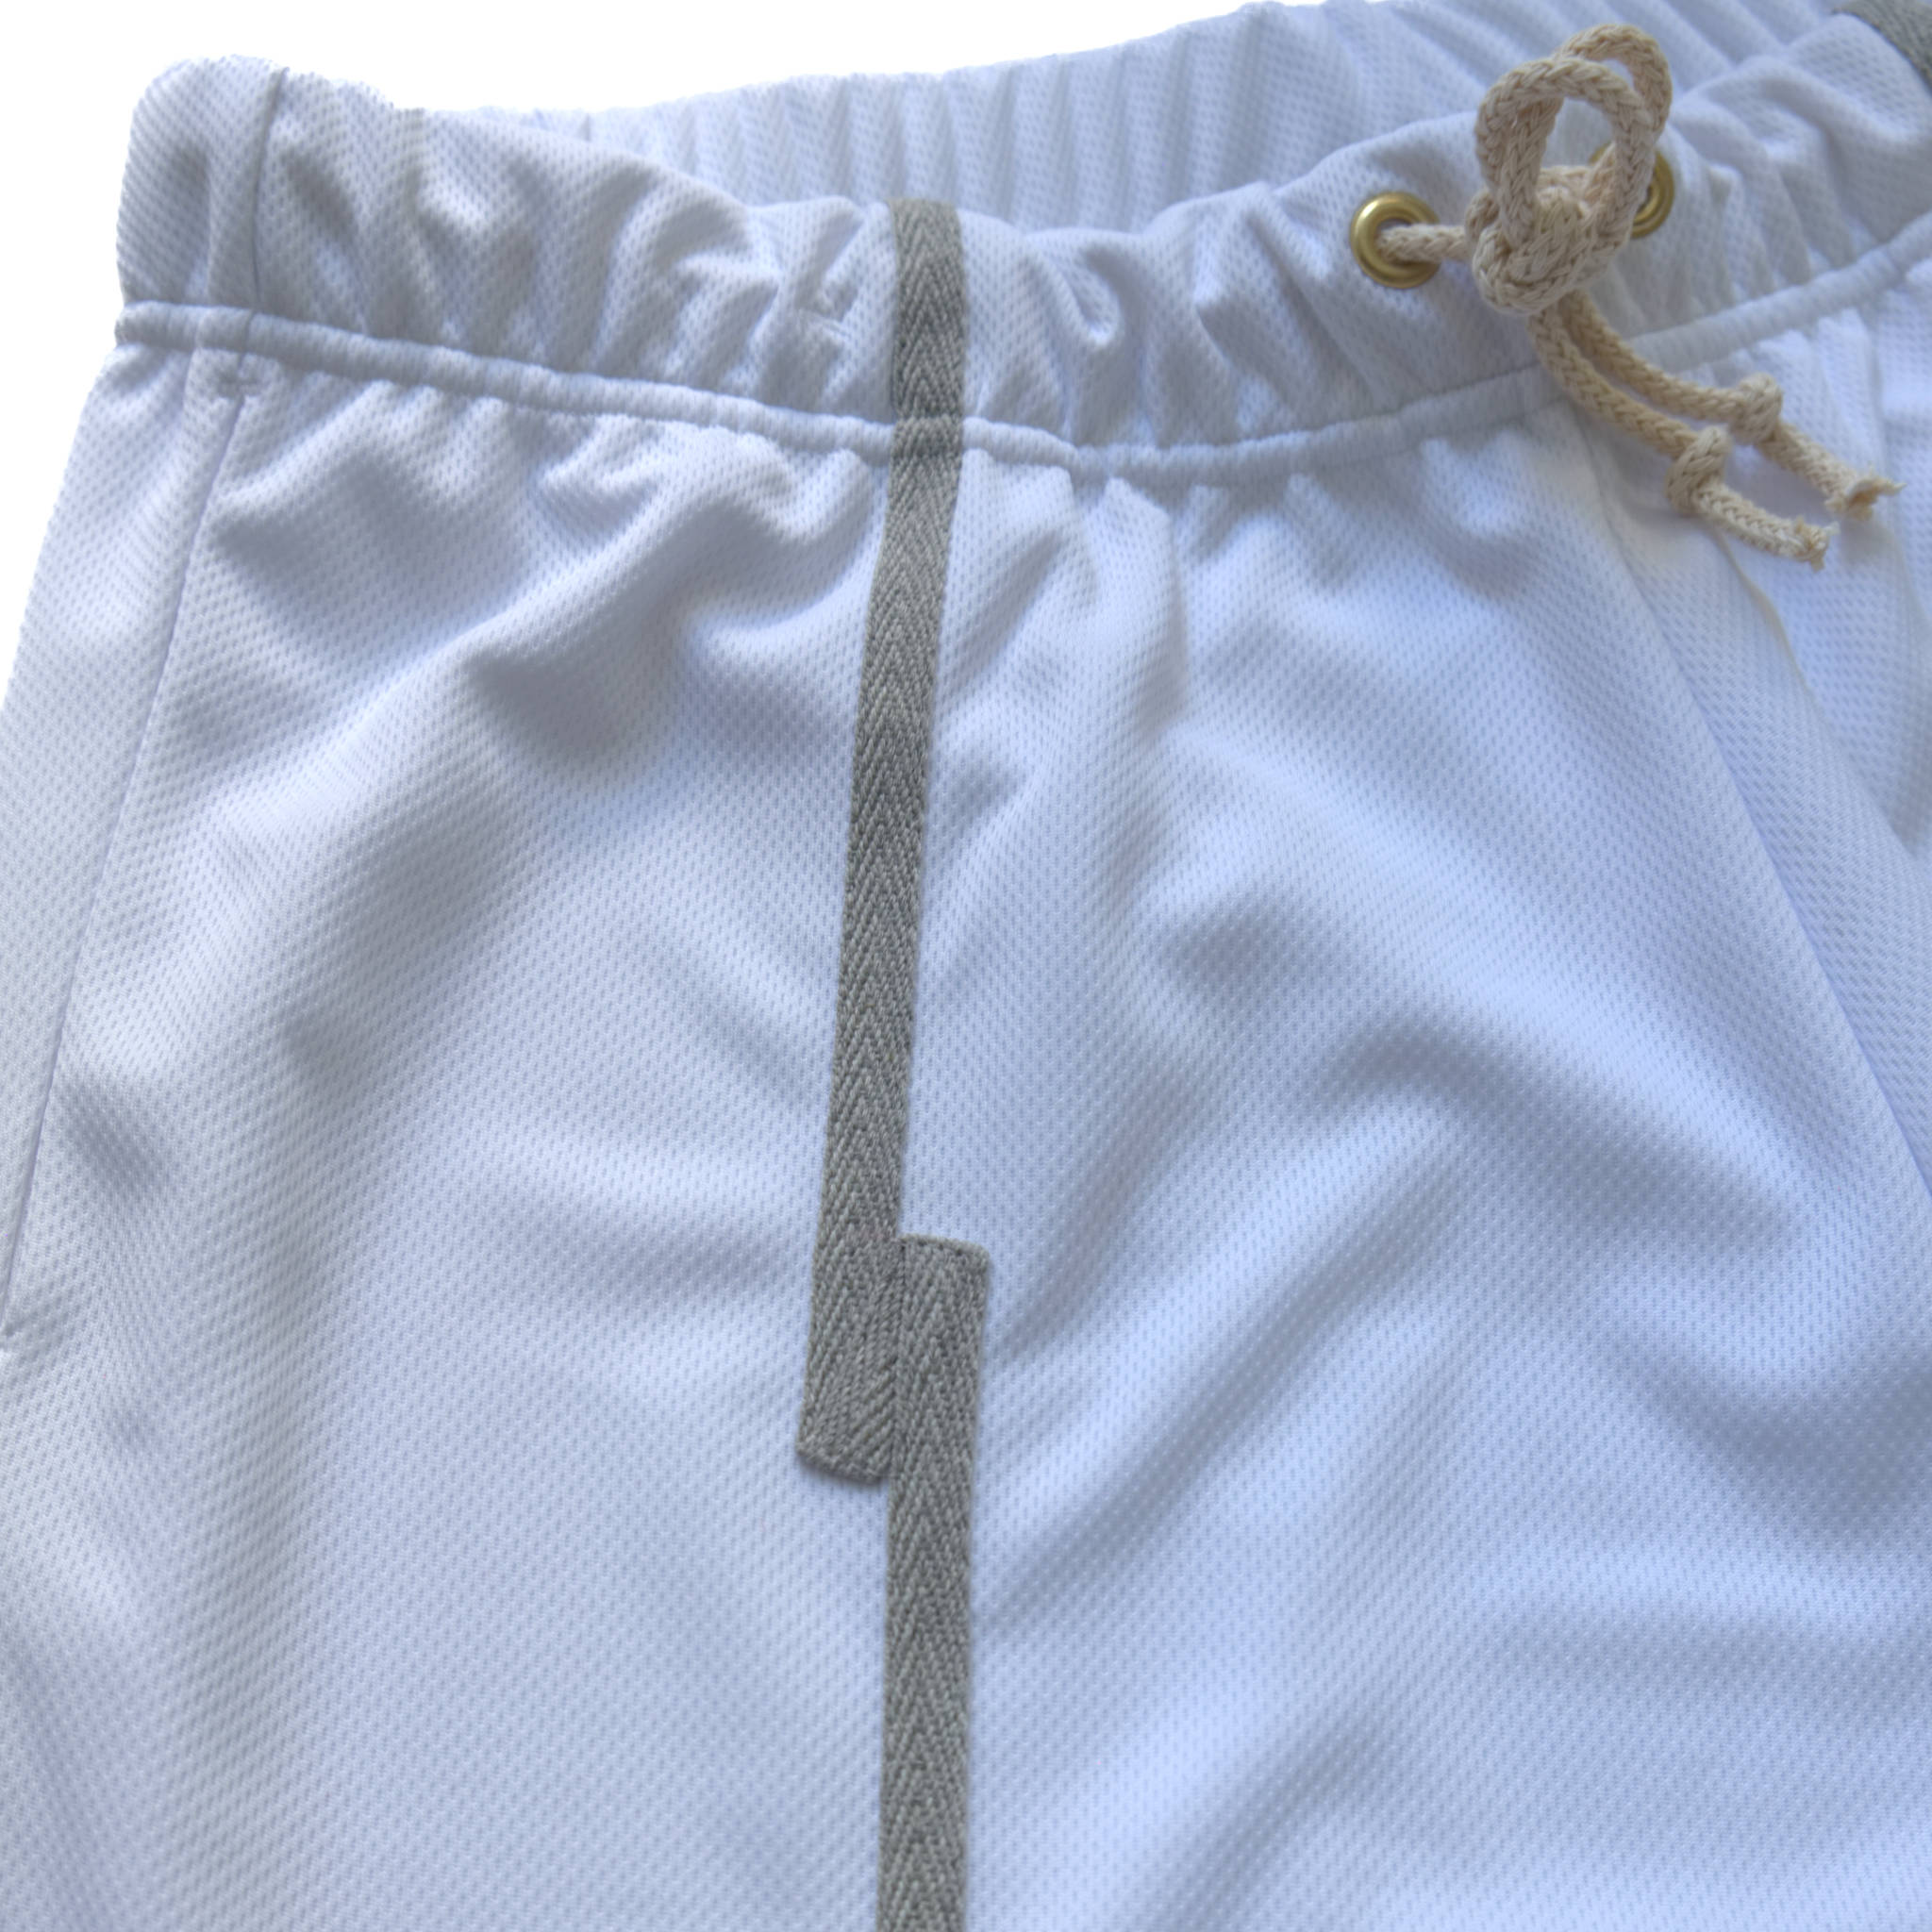 Cogs | After Carter capsule Franchise Shorts Home colourway | 4